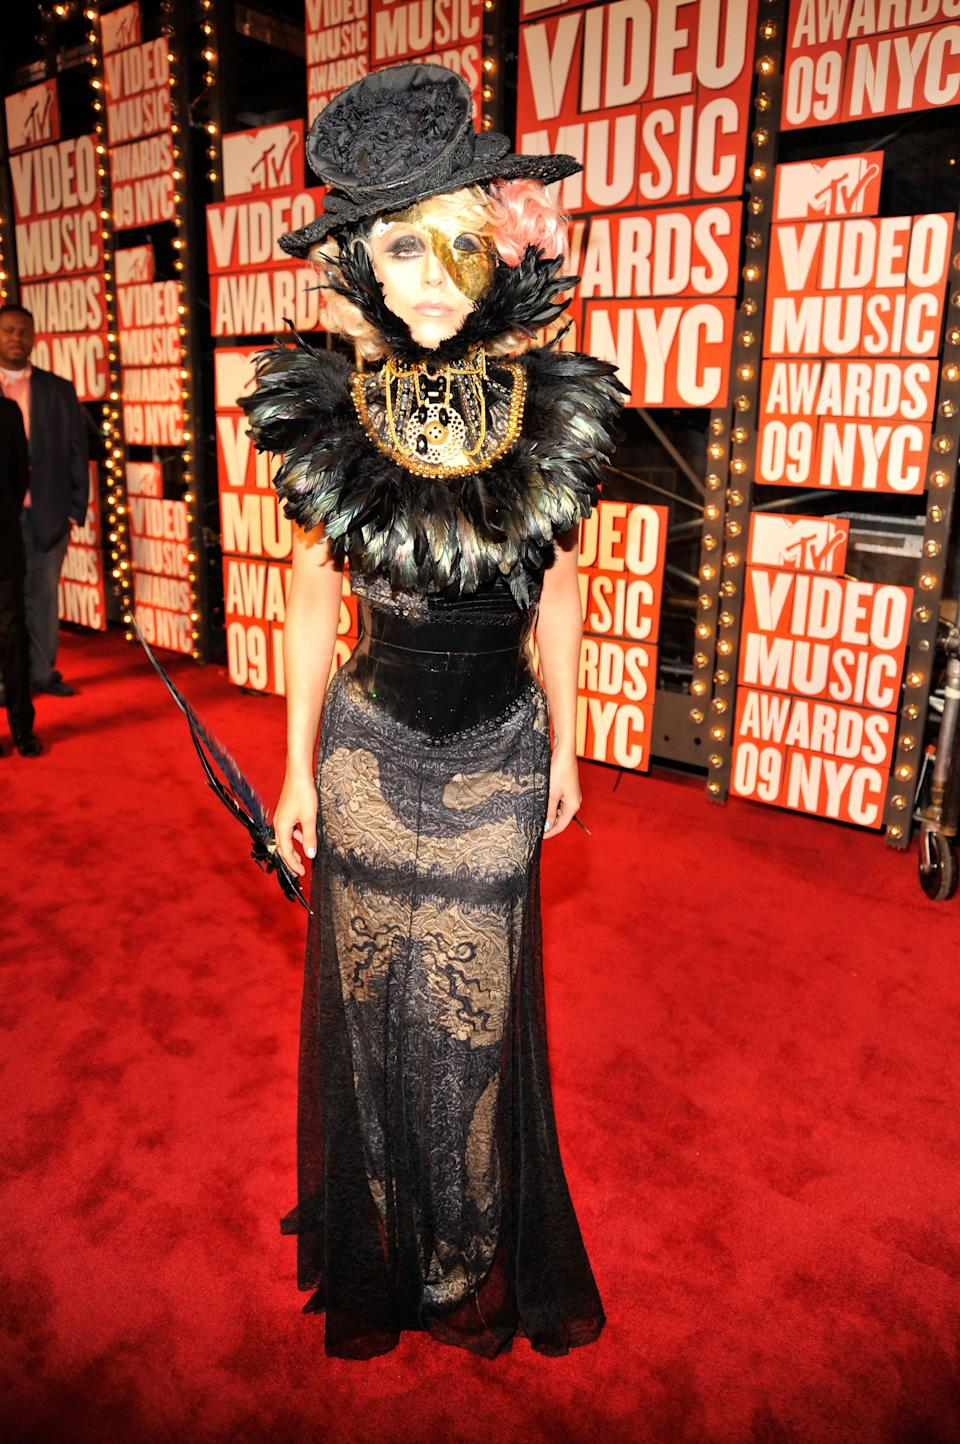 Gaga wears a dress by Jean Paul Gaultier on the red carpet at the 2009 MTV VMAs.